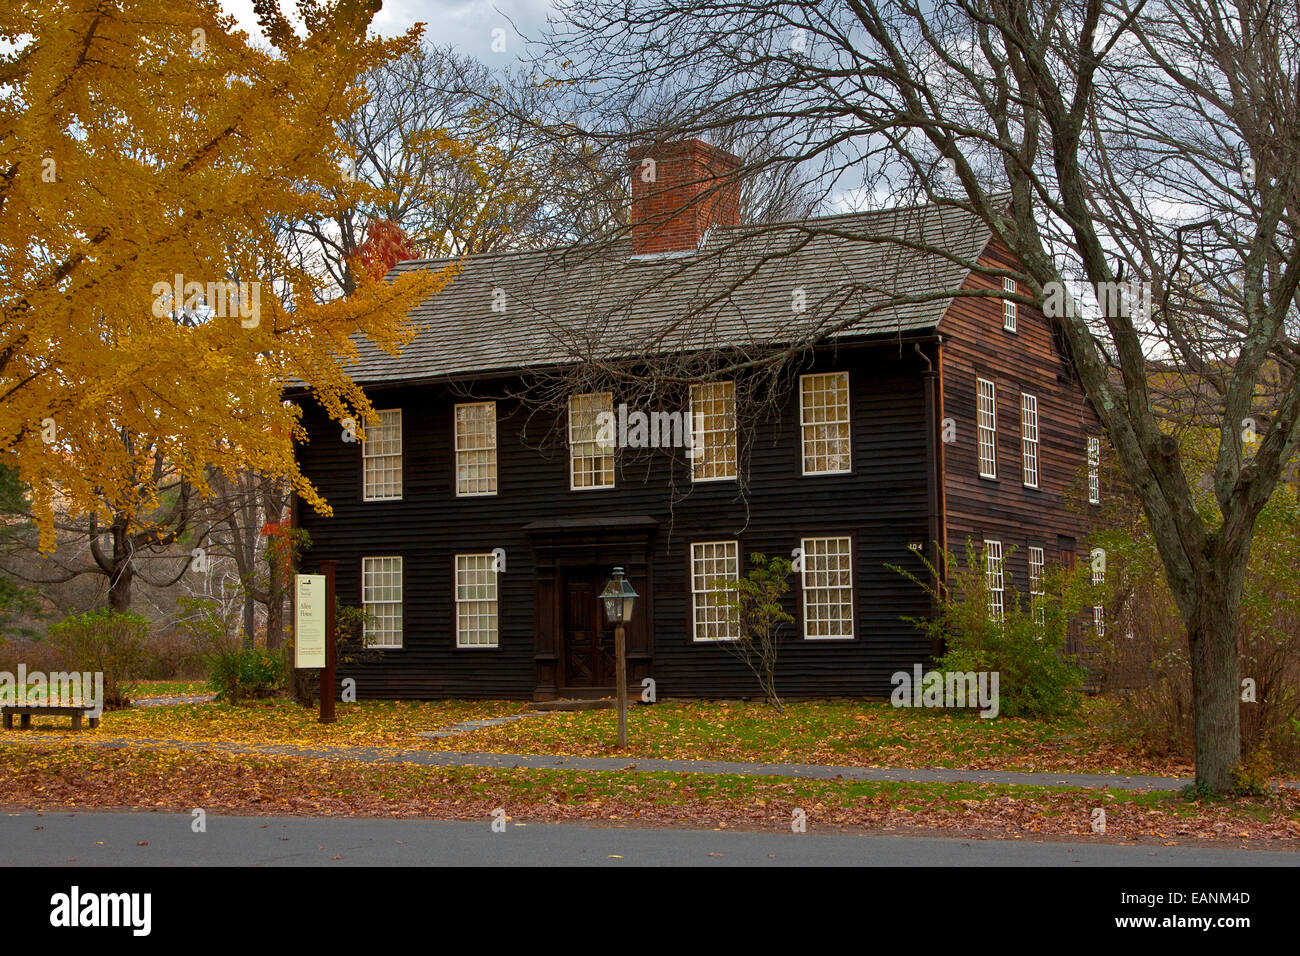 Deerfield, Massachusetts, Historic Deerfield, Old Deerfield, bright fall foliage reflects in the windows of Allen - Stock Image